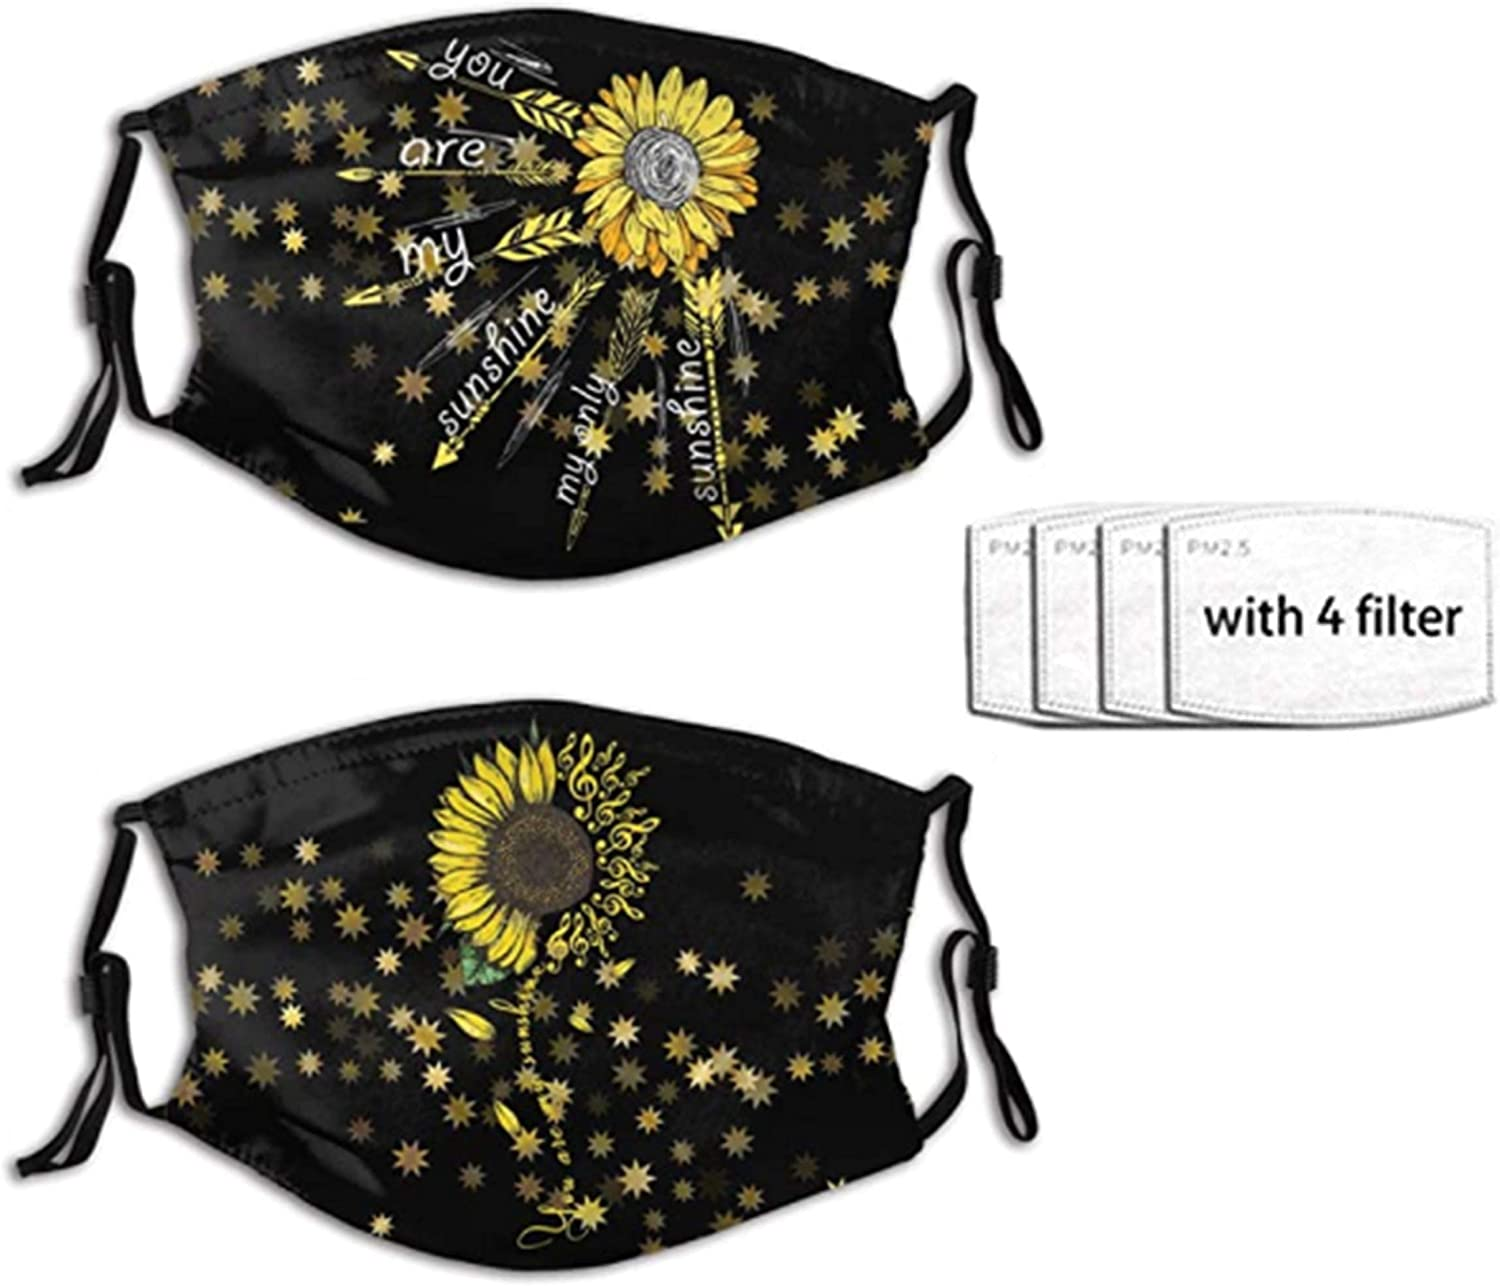 2PC Sunflower Music Sales of SALE items from new works Reusable Washable Anti Dust Face All stores are sold Balaclava